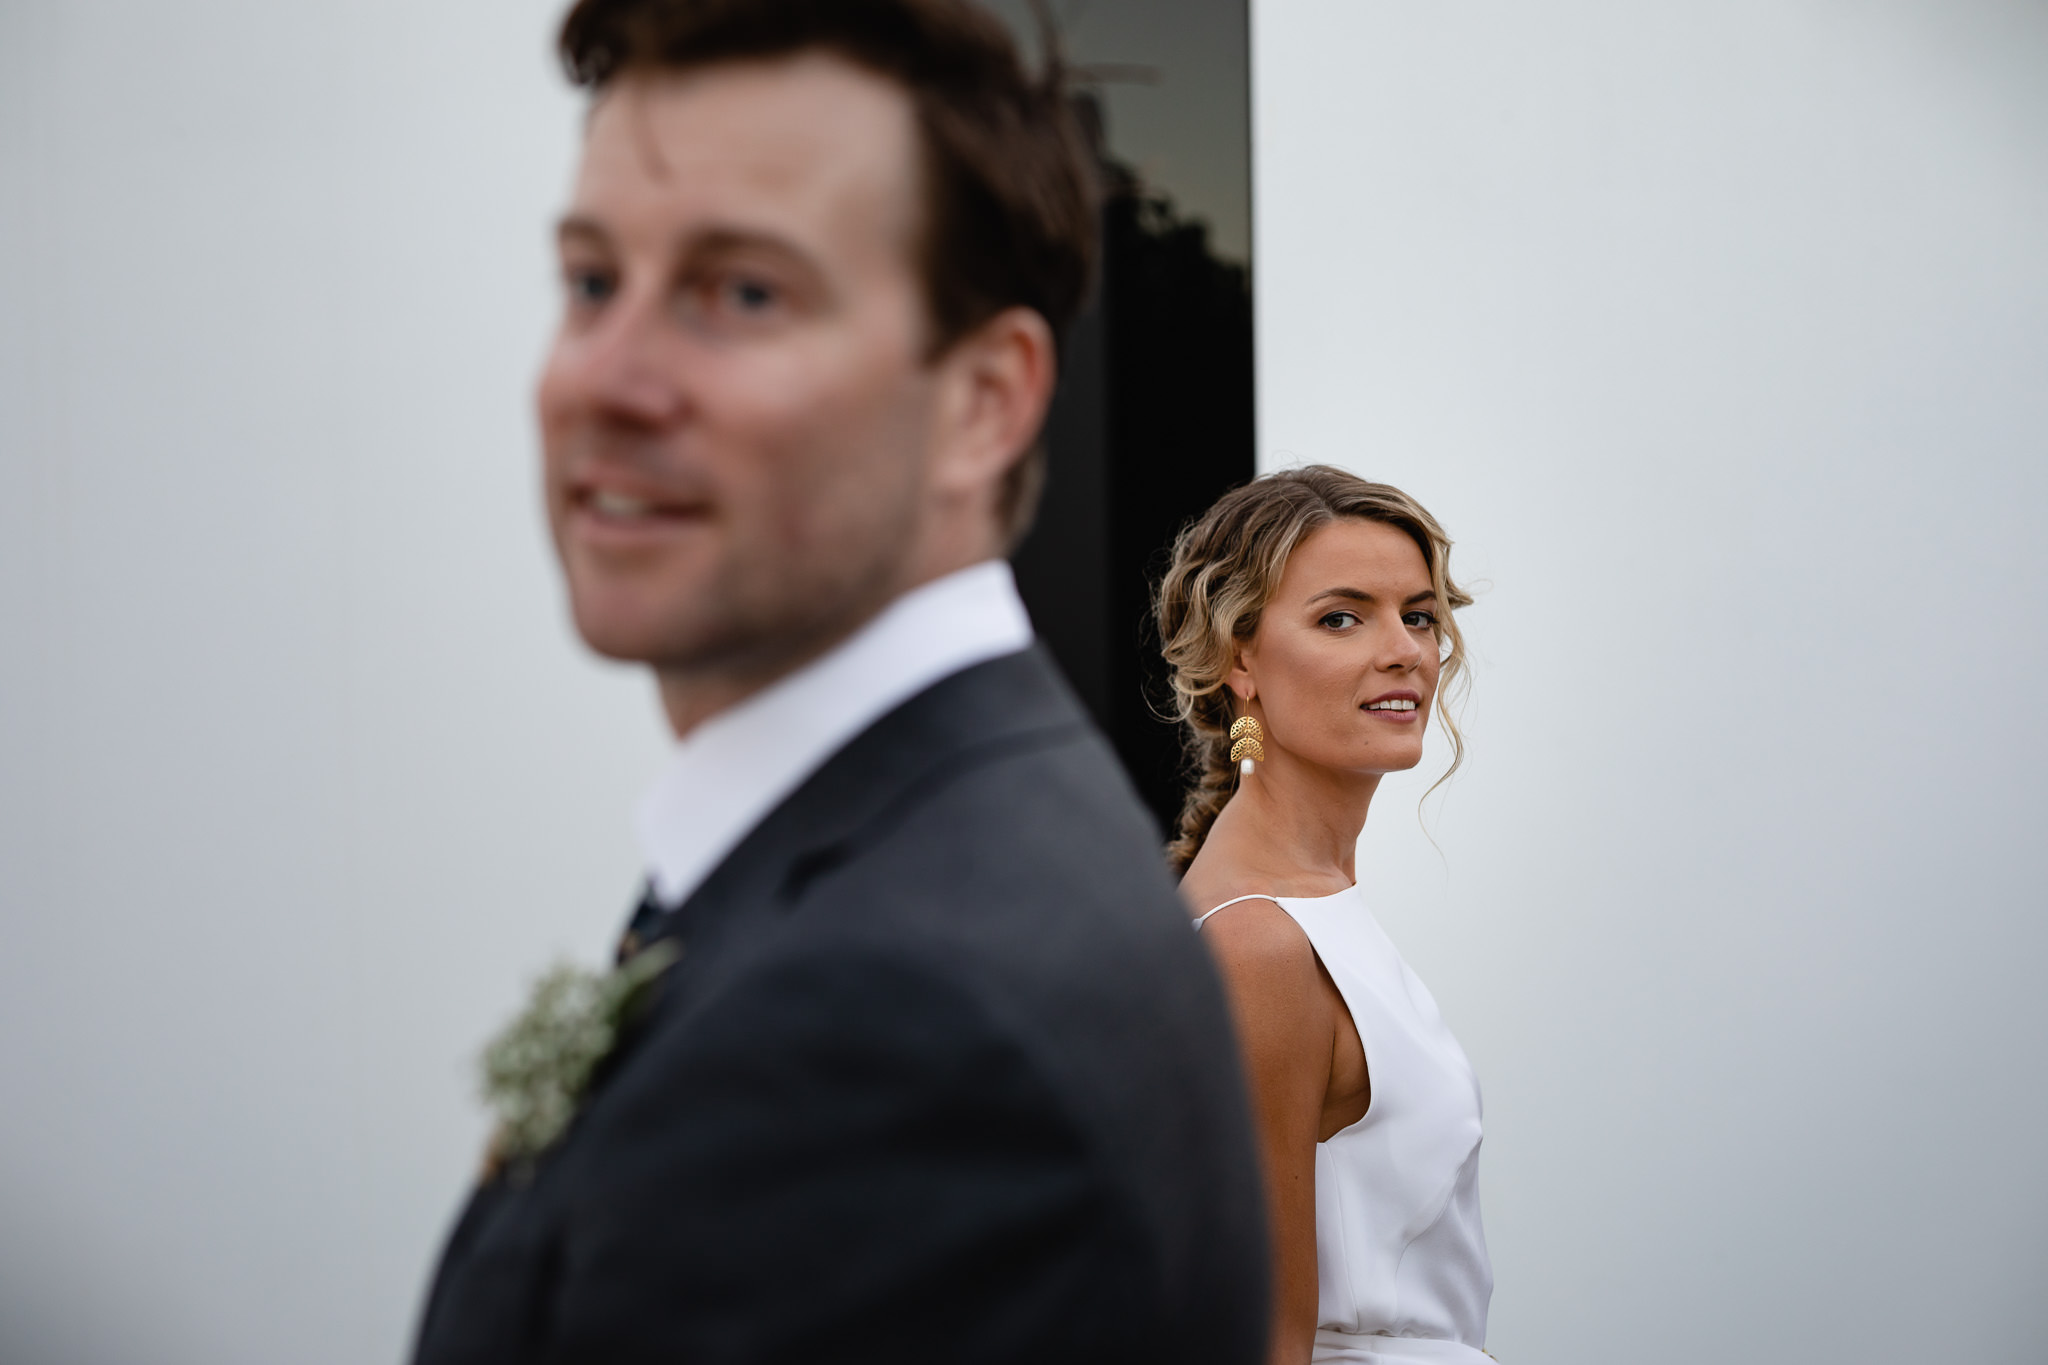 Bride looking over her shoulder past groom in front of black and white lines on a modern building